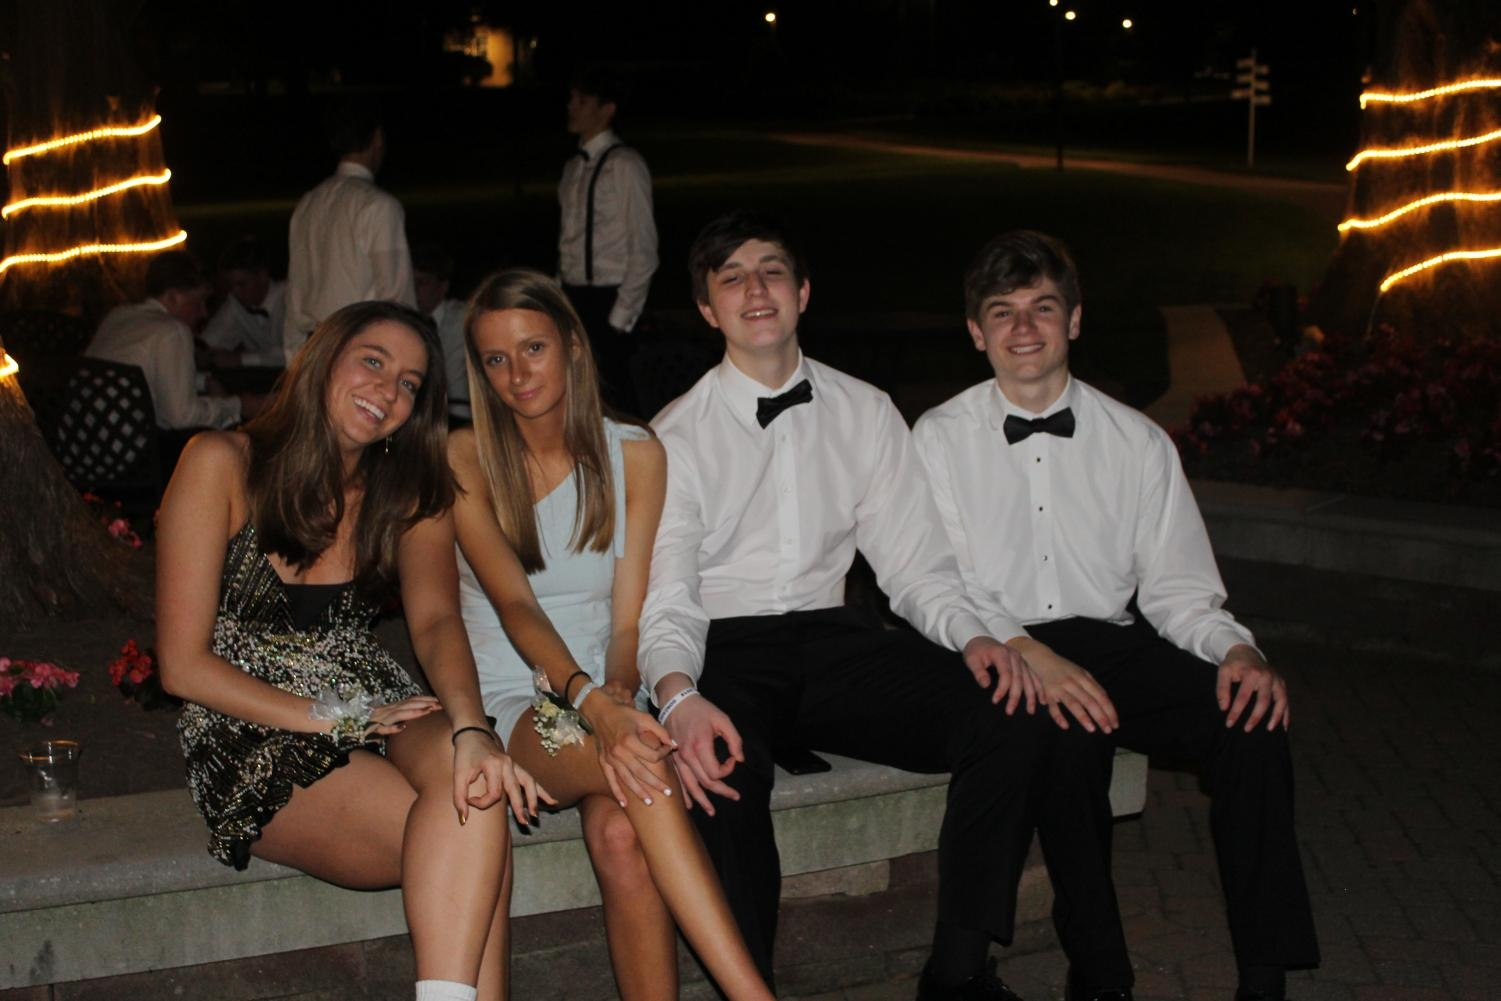 Juniors Sammy Hermans and Nora Gibson with their dates.